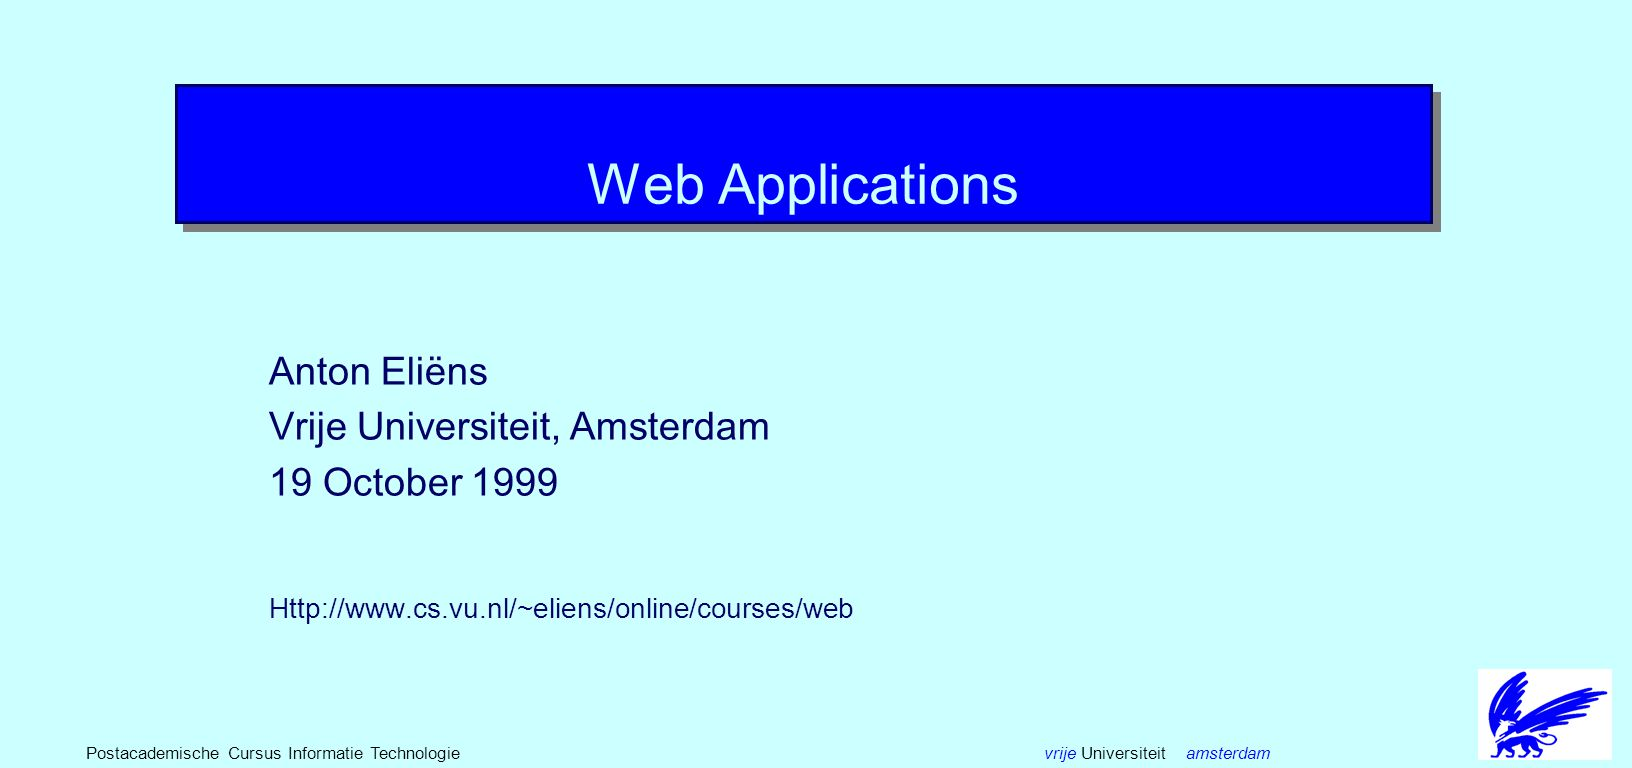 vrije Universiteit amsterdamPostacademische Cursus Informatie Technologie Gateway to (Educational) Metadata - GEM meta-data for networked information discovery and retrieval Objectives domain-specific vocabulary concrete syntax (using HTML) tools for retrieving meta-data design prototype interfaces to GEM Background Dublin Core Element Set XML, RDF